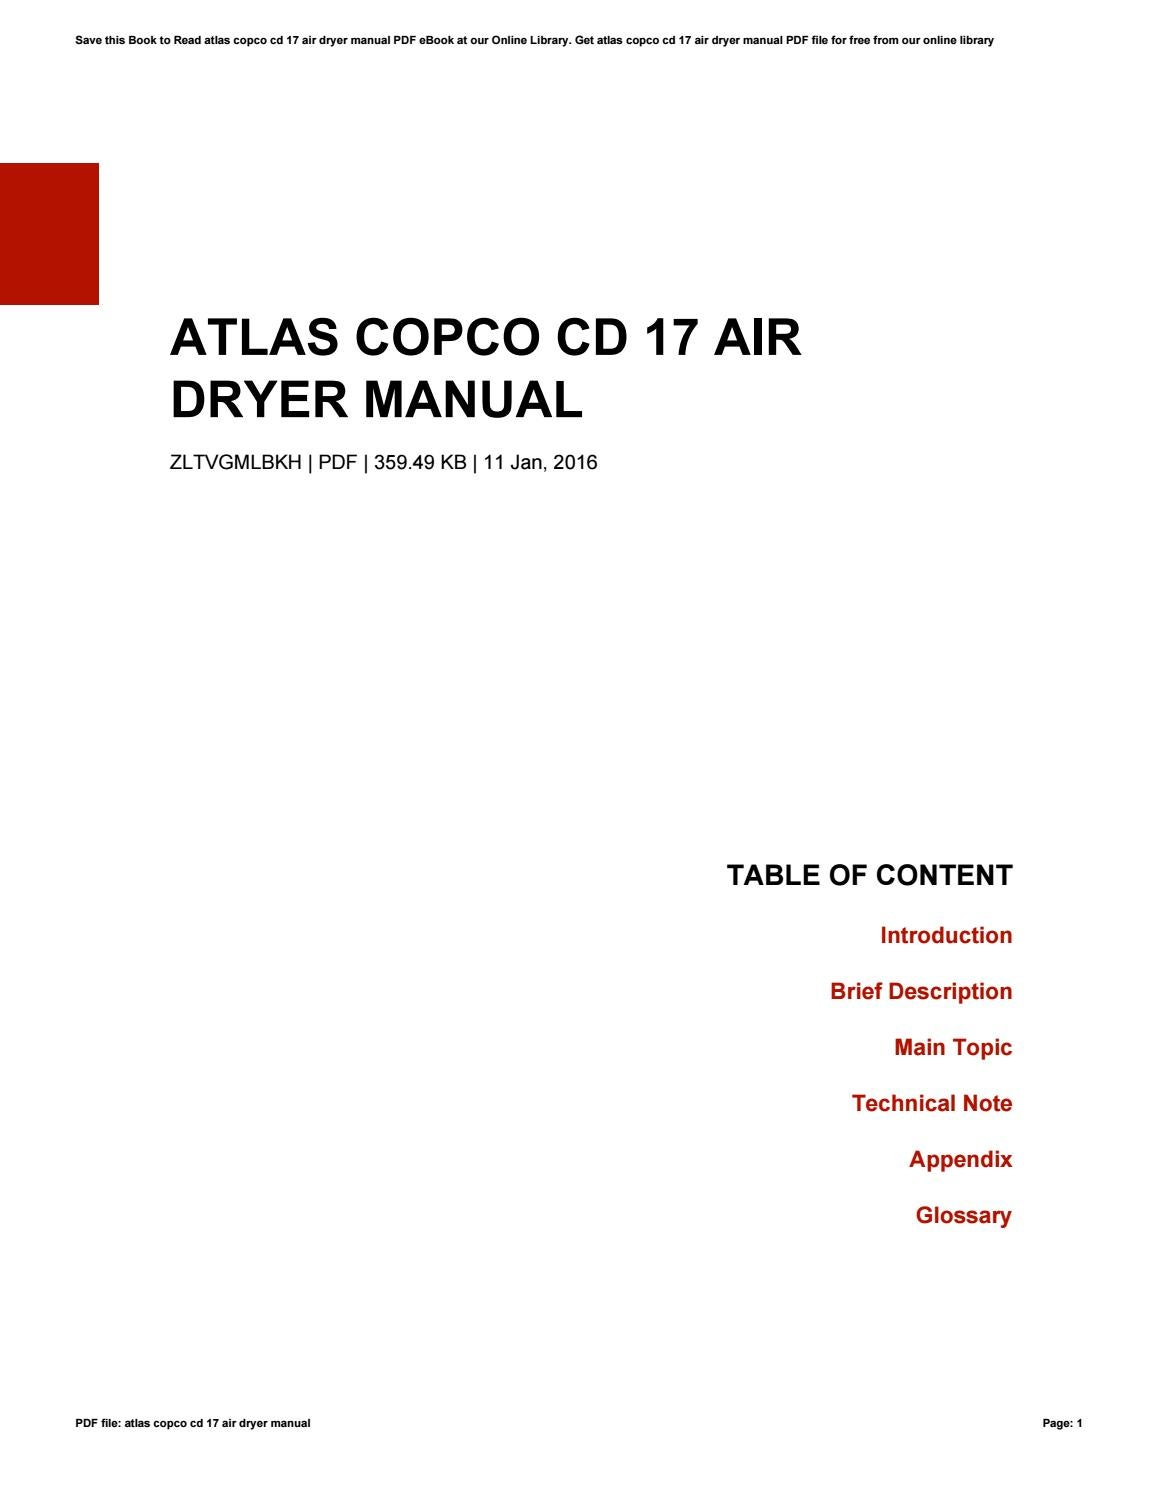 Atlas copco cd 17 air dryer manual by ErnestMcDowell4614